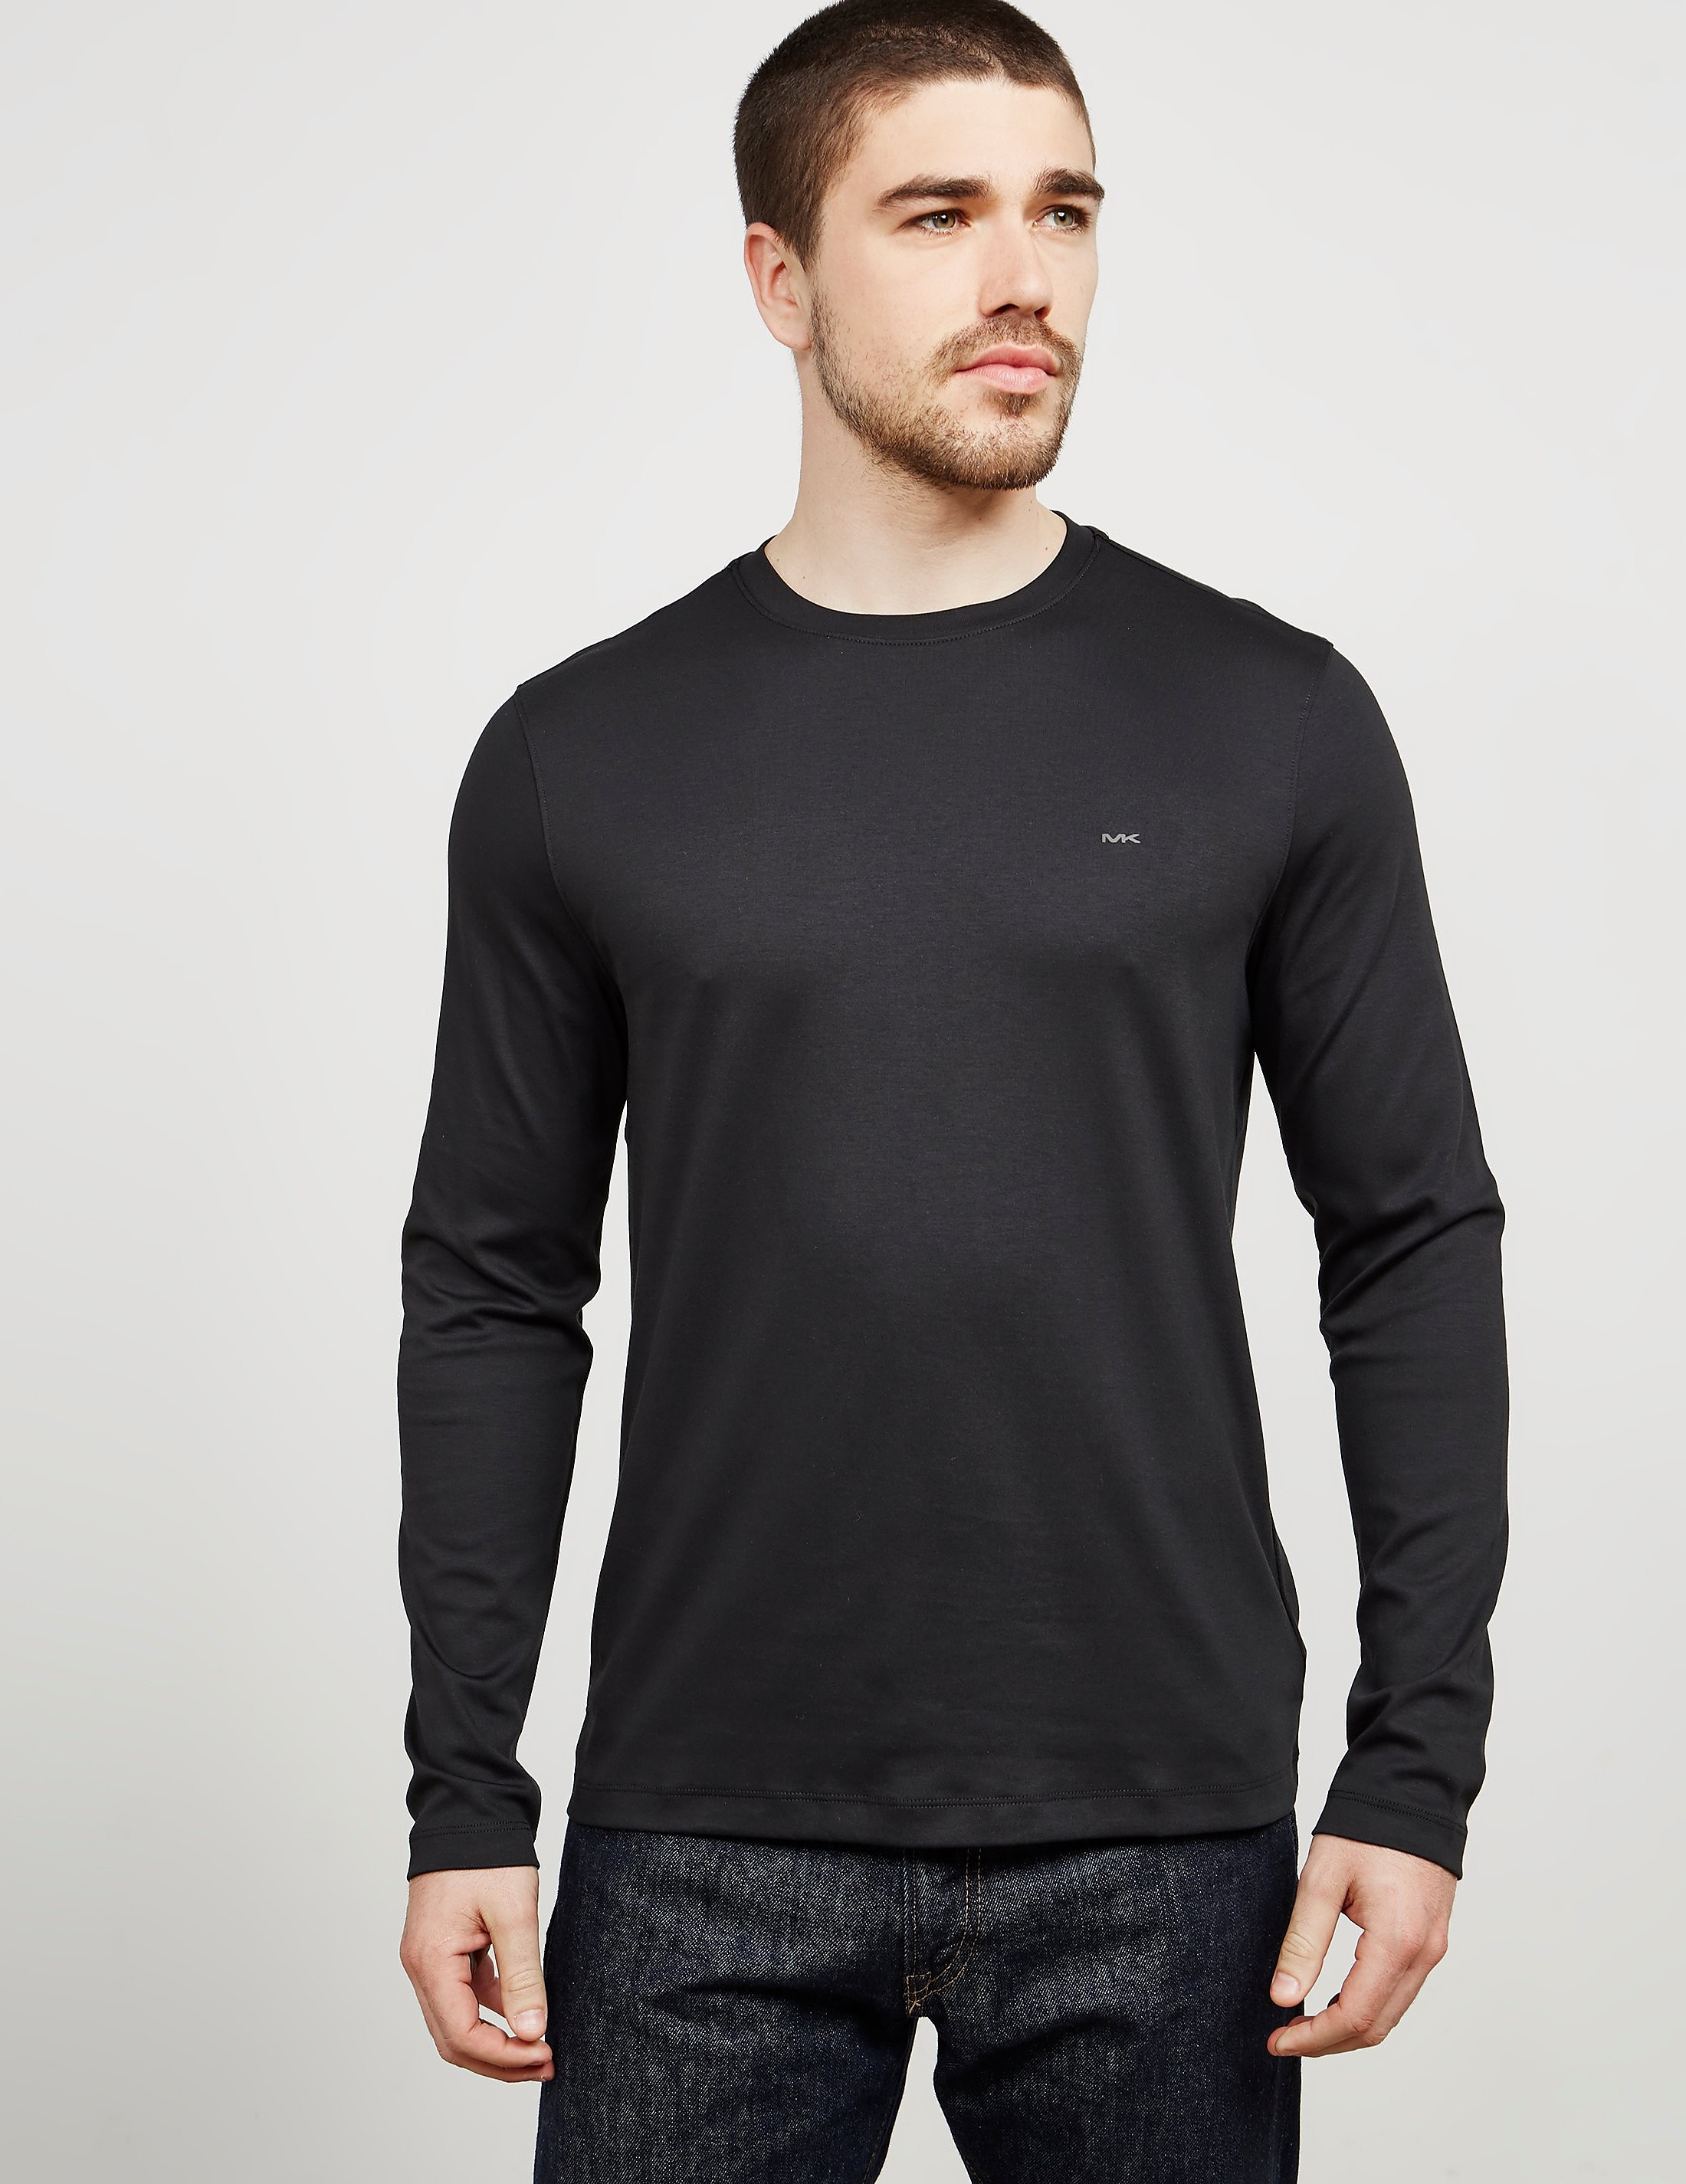 Michael Kors Sleeke Long Sleeve T-Shirt